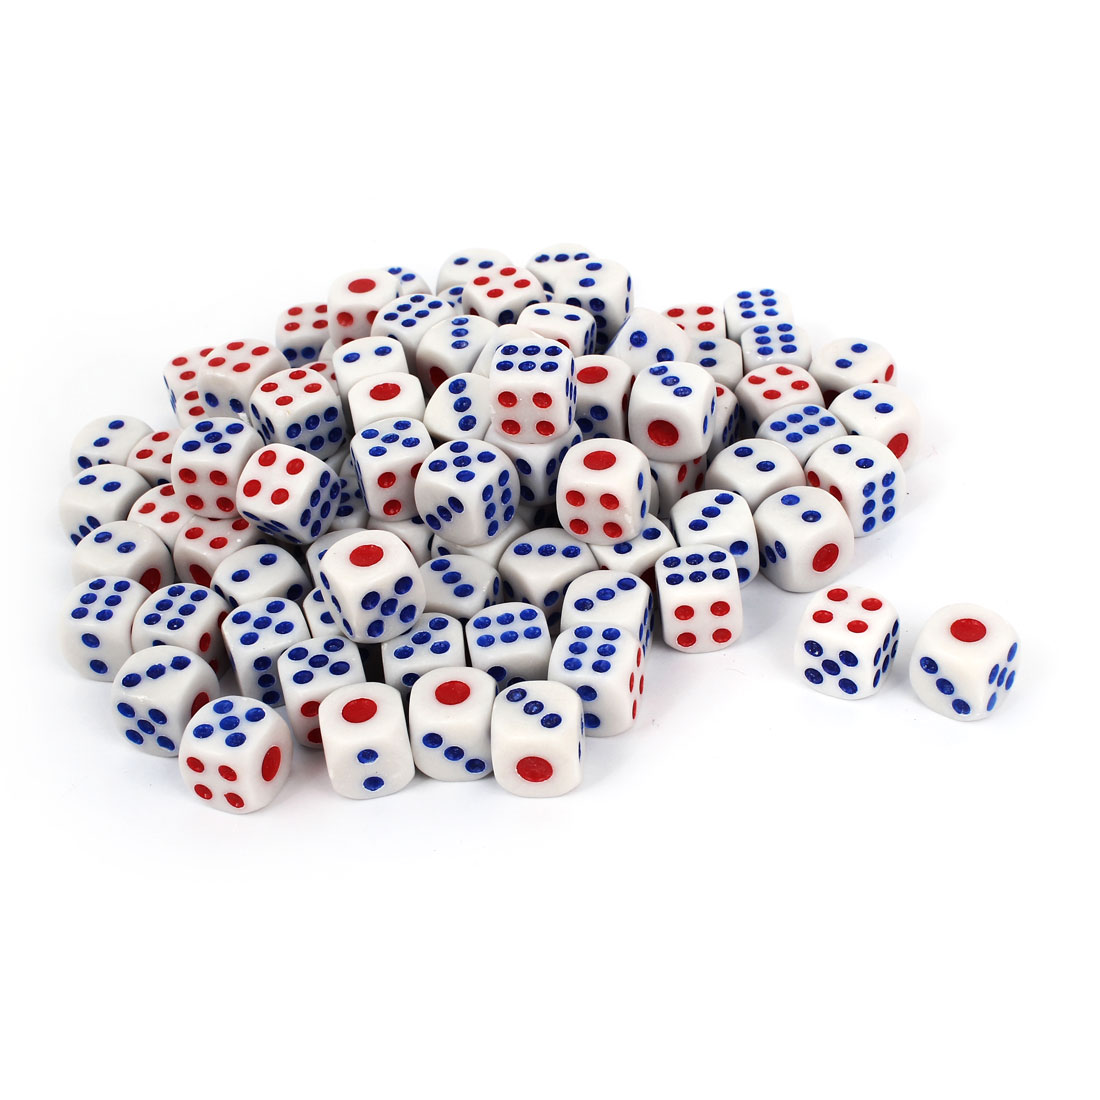 Unique Bargains Plastic Game Dices White Red Blue 100 Pcs